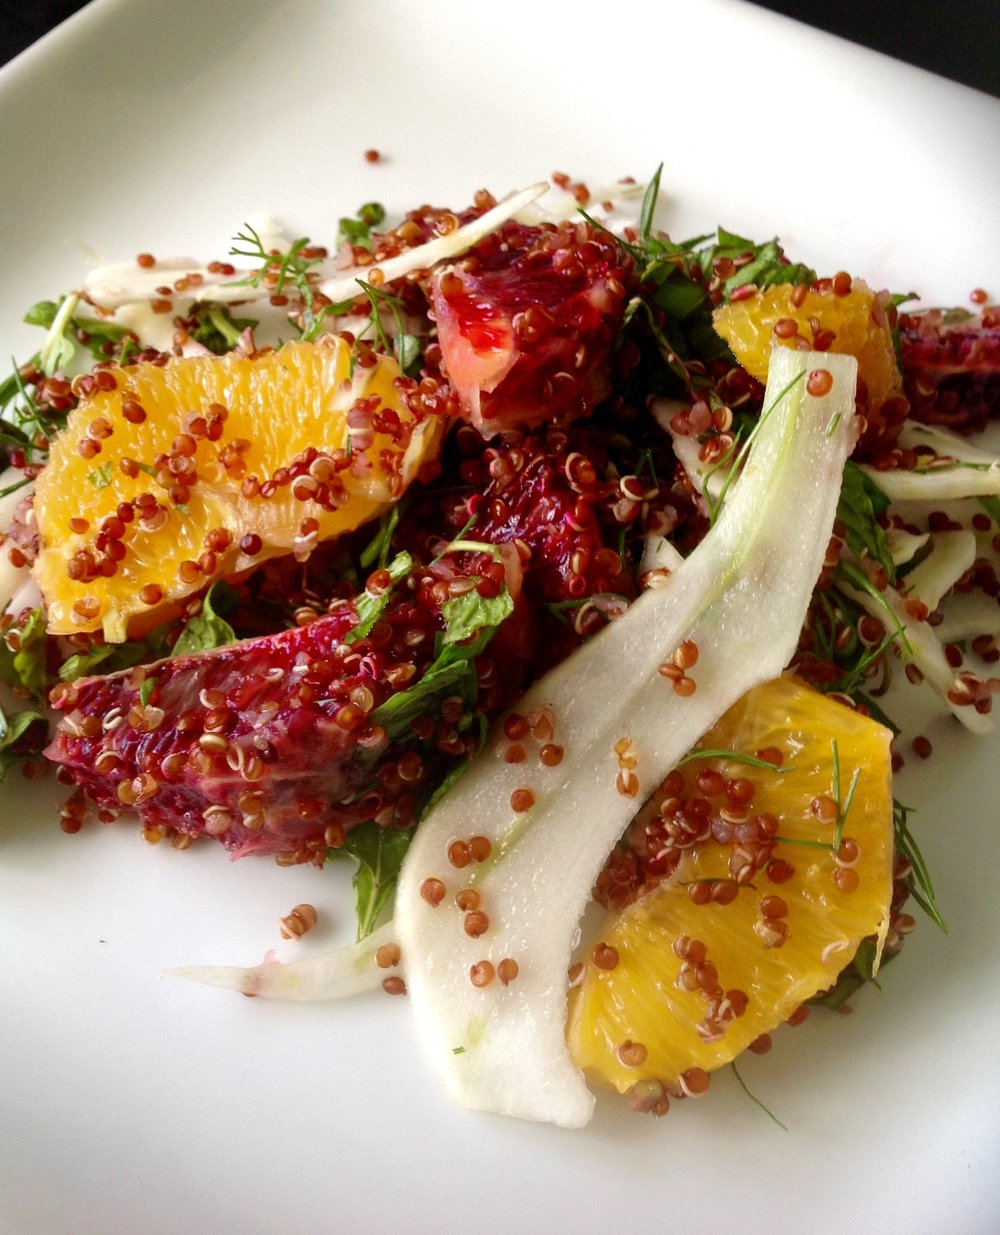 Red Quinoa Fennel Citrus Salad - Healthy, Gluten-Free, Whole Grain, Organic, Heirloom, Oil-Free, Plant-Based, Vegan Recipe